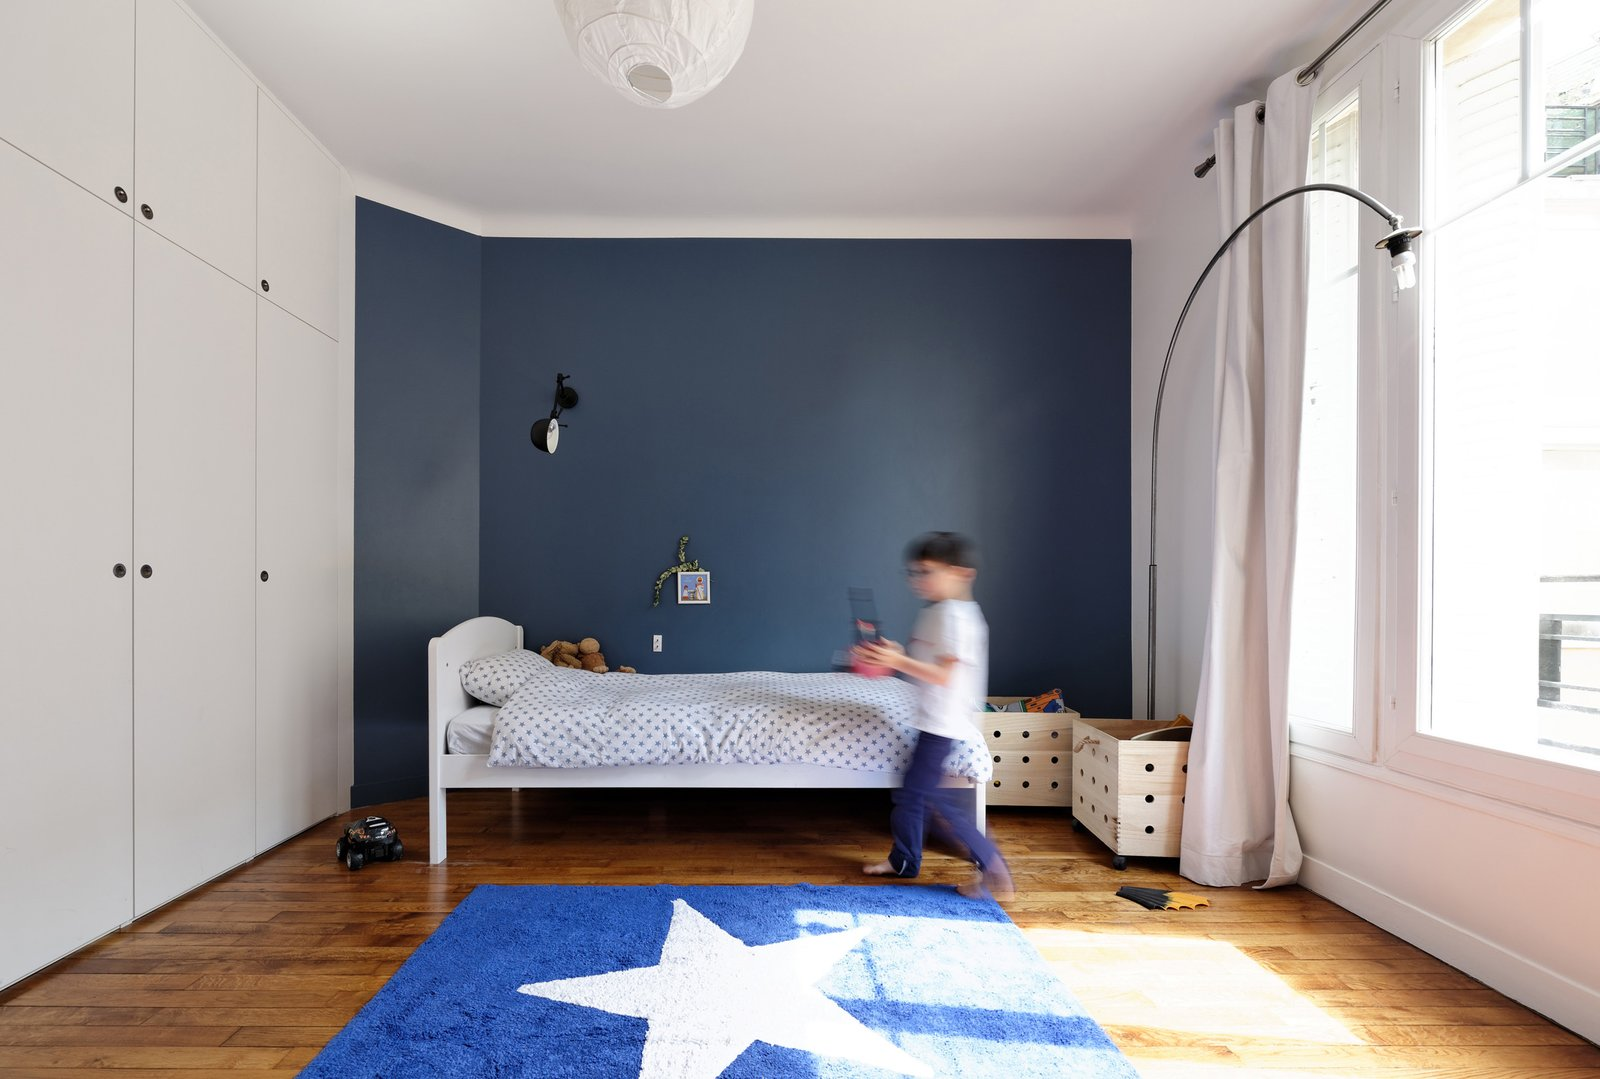 """Kids Room, Bedroom Room Type, and Bed """"All interior walls were removed to create four individual rooms on the sixth floor,"""" Hammer says. The two children and the new baby share a bathroom. And in their bedrooms, storage continues to be key.  Search """"paris landmarks architectural print unframed"""" from How Many Apartments Does it Take to Make One Home?"""